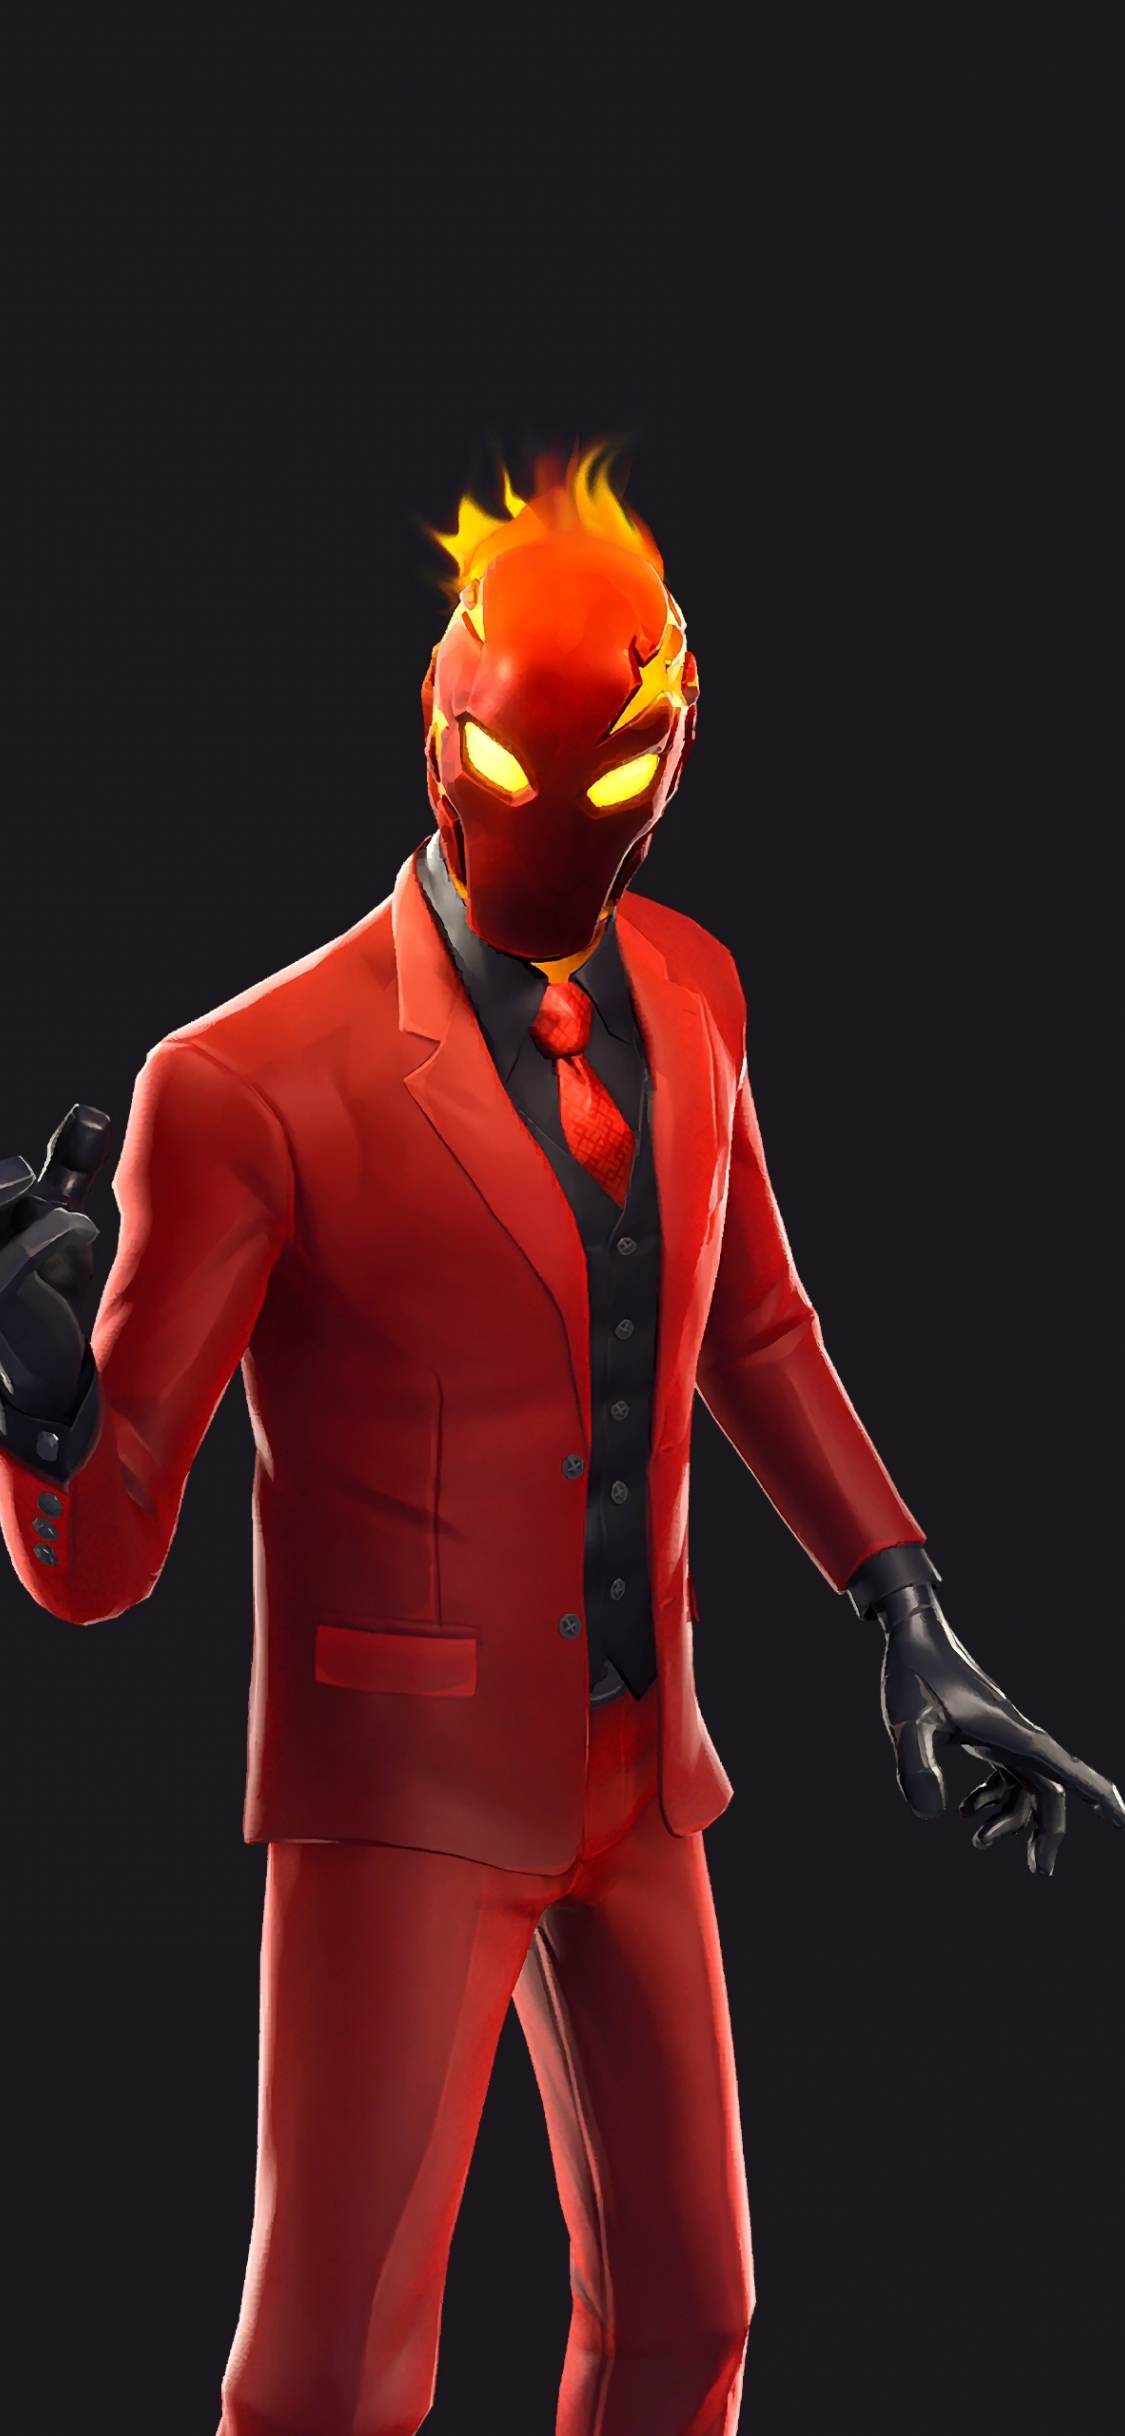 Download 1125x2436 wallpaper game, 2019, red suit, inferno